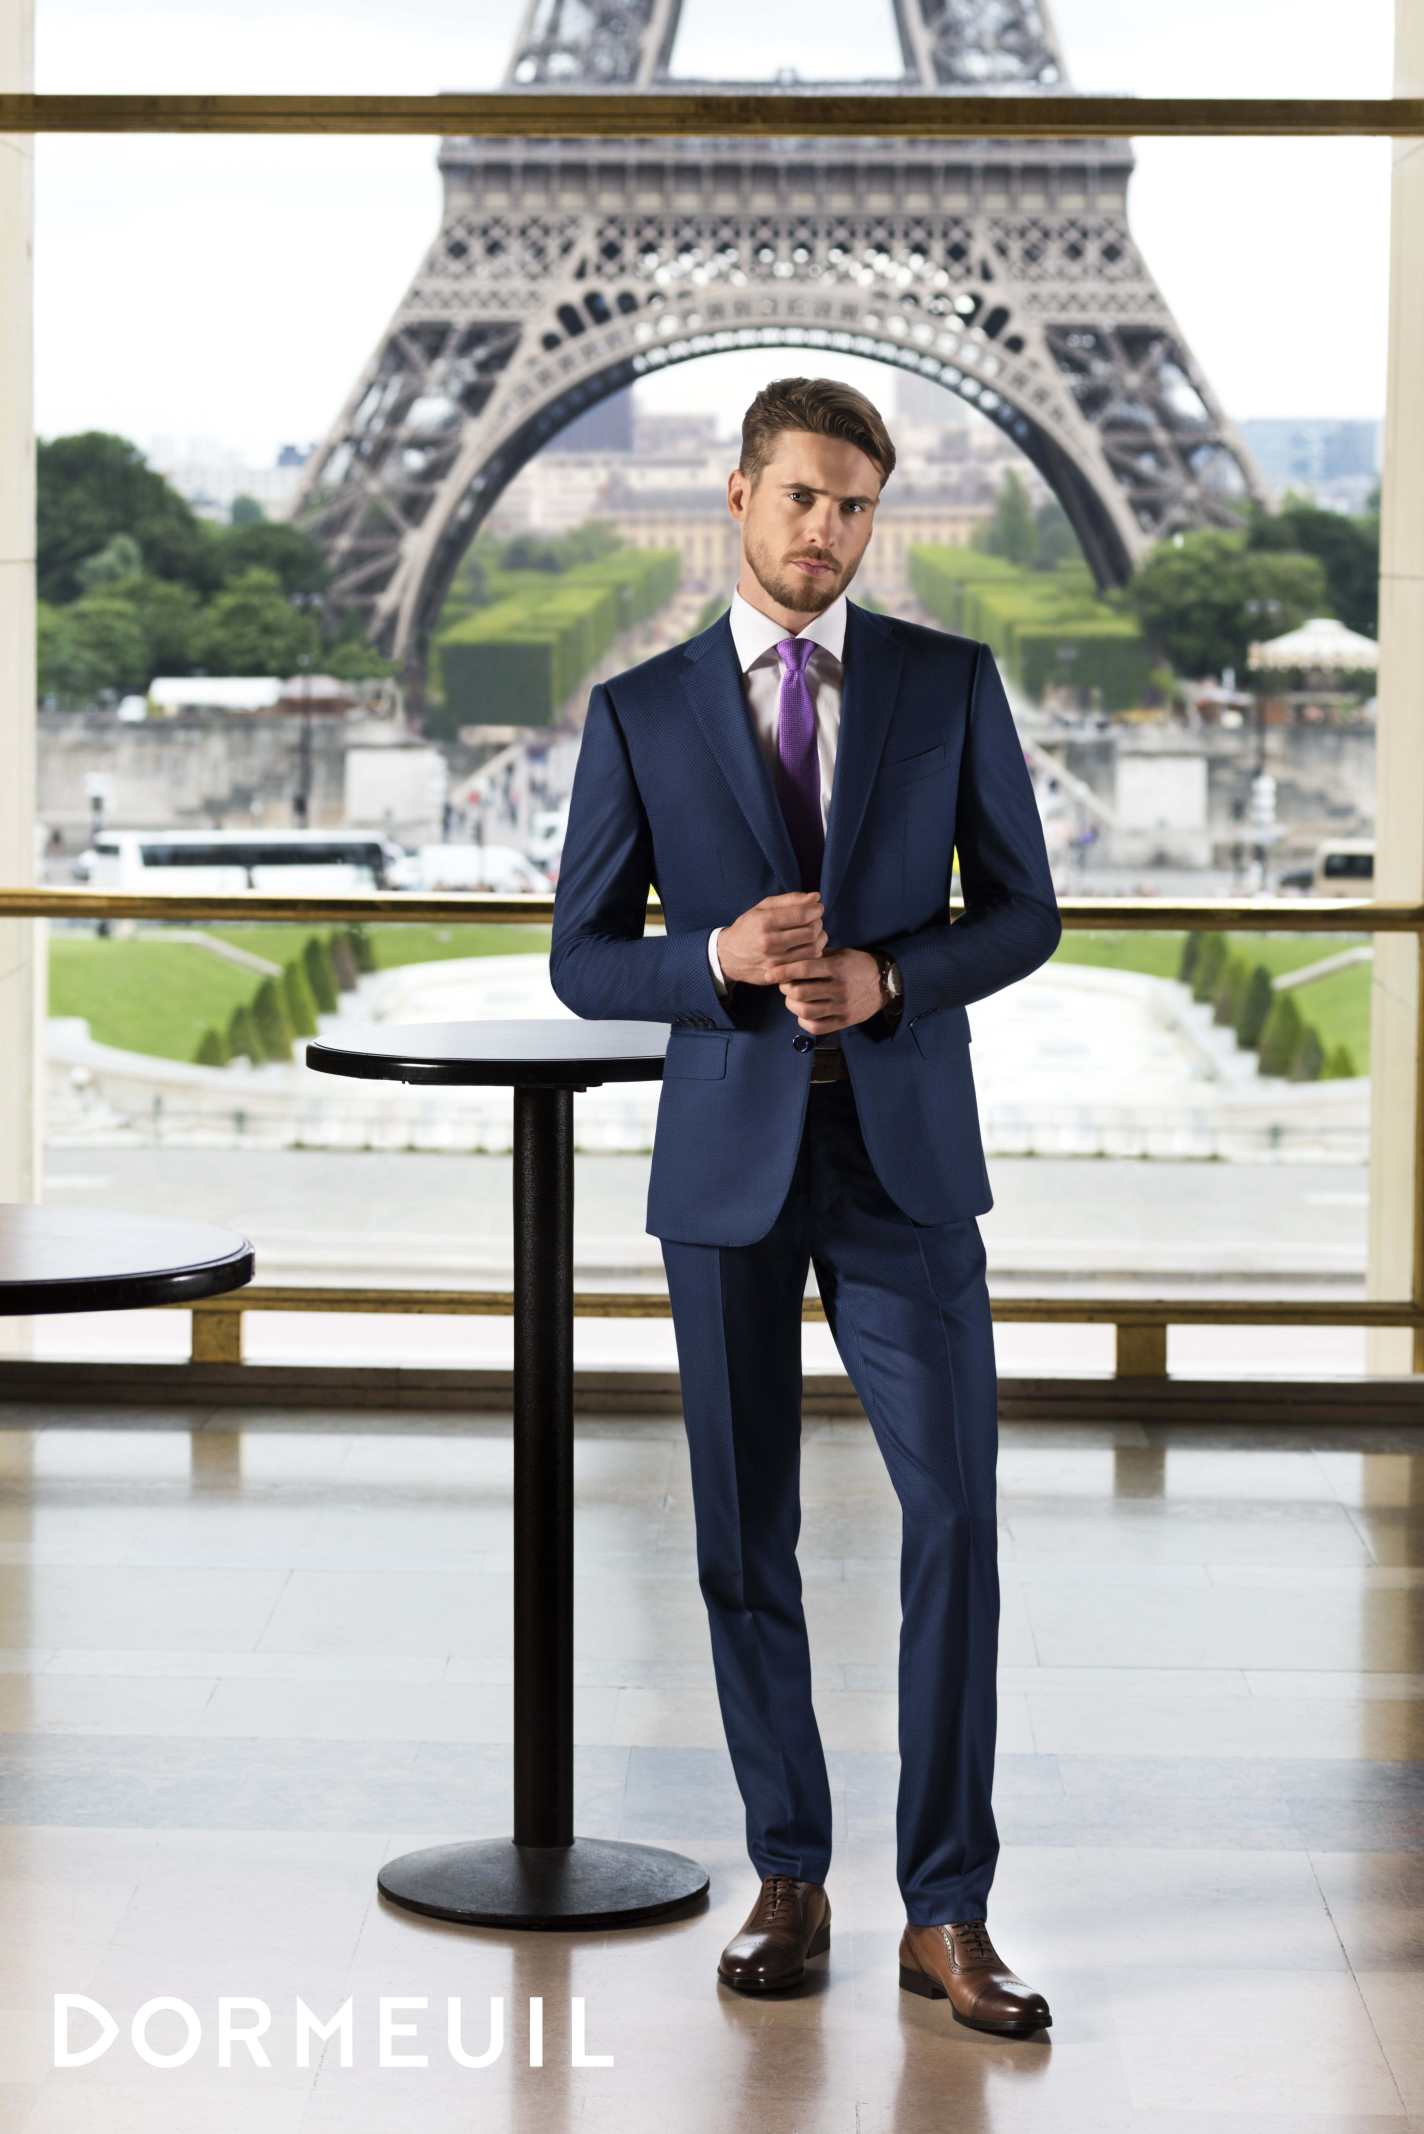 aurore-donguy-dormeuil-1